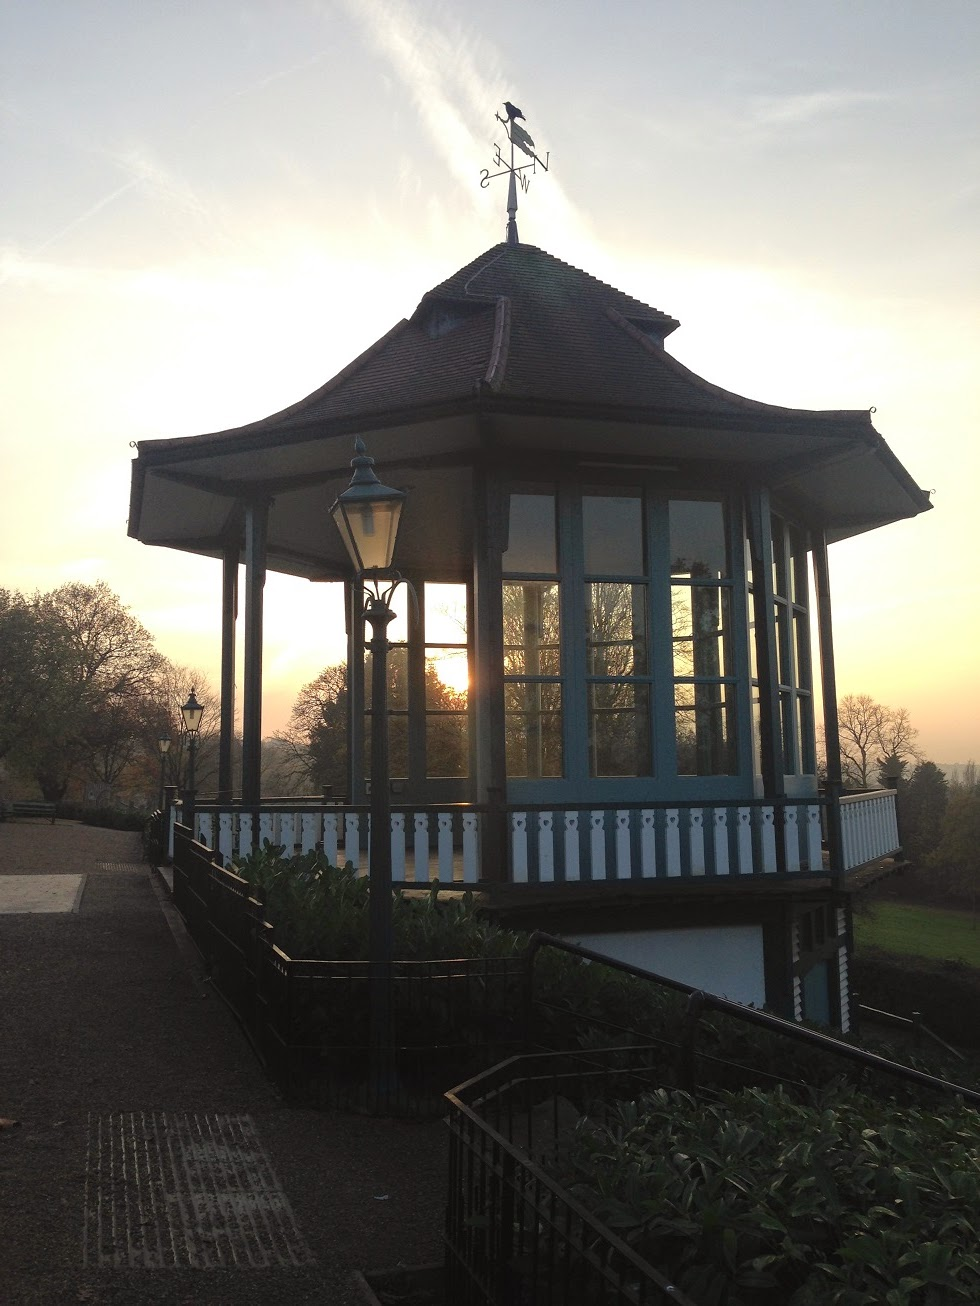 Bandstand, Horniman Gardens, Forest Hill, London